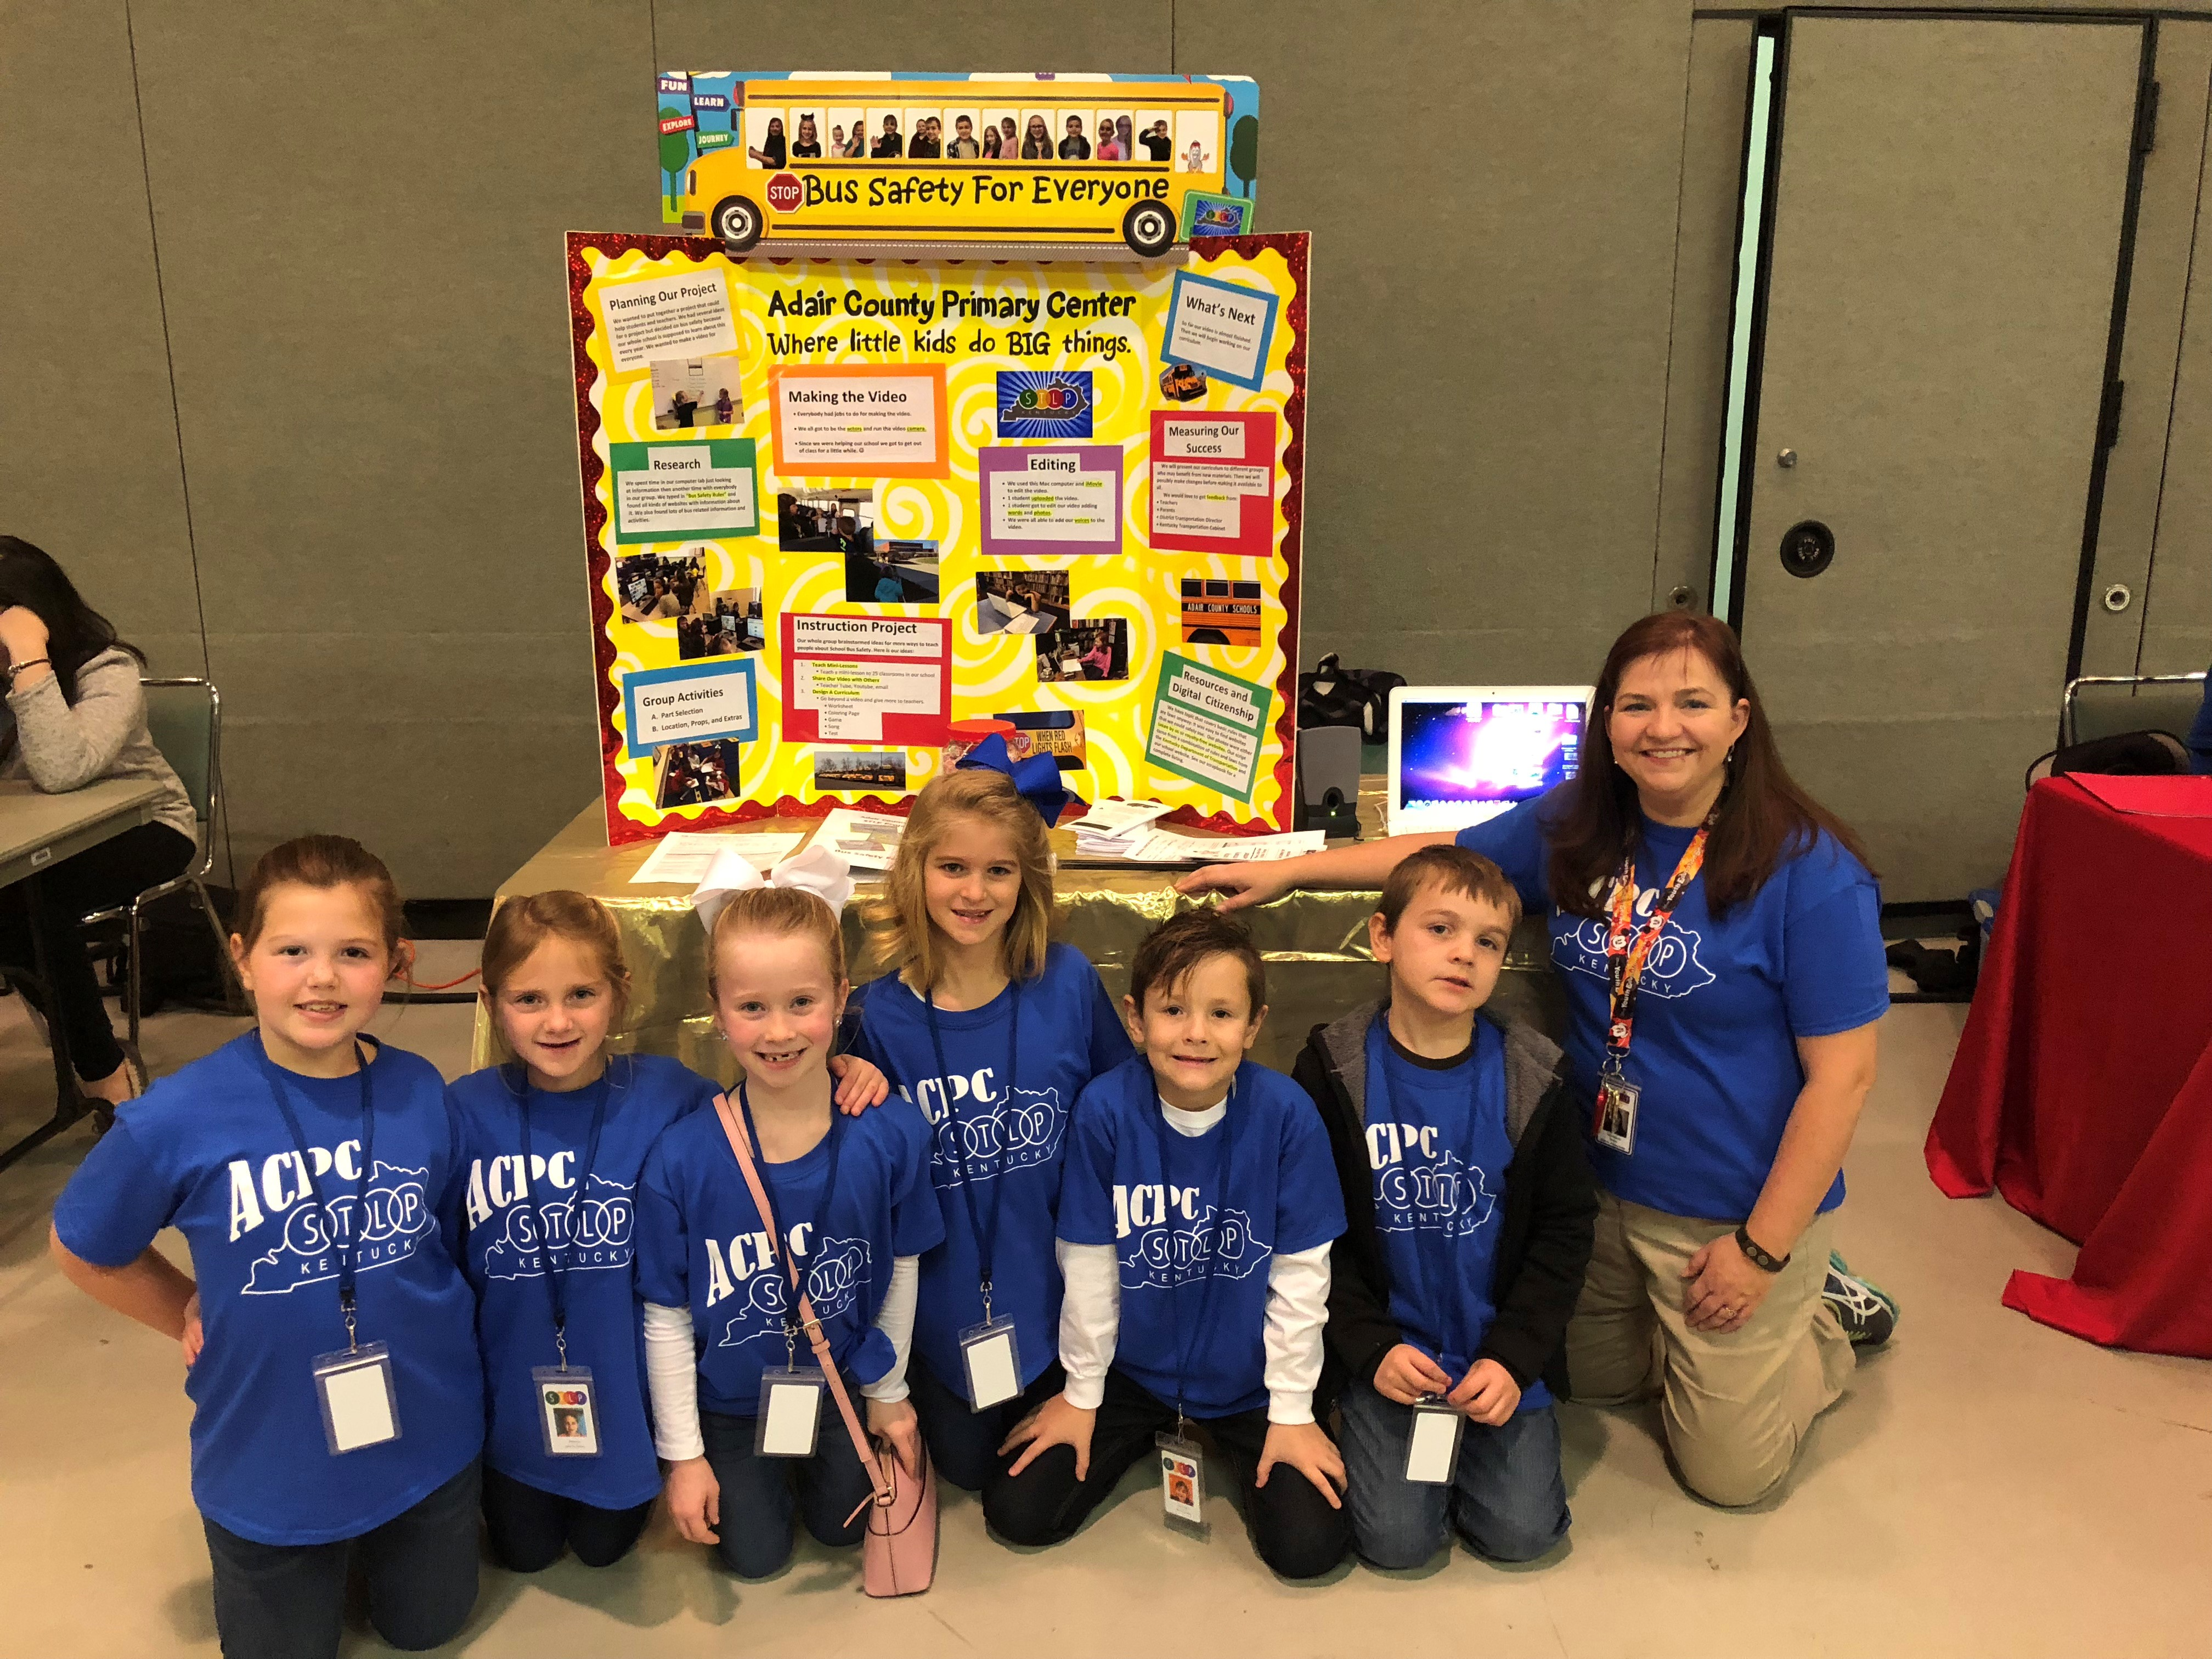 ACPC Students Attend Regional STLP Competition